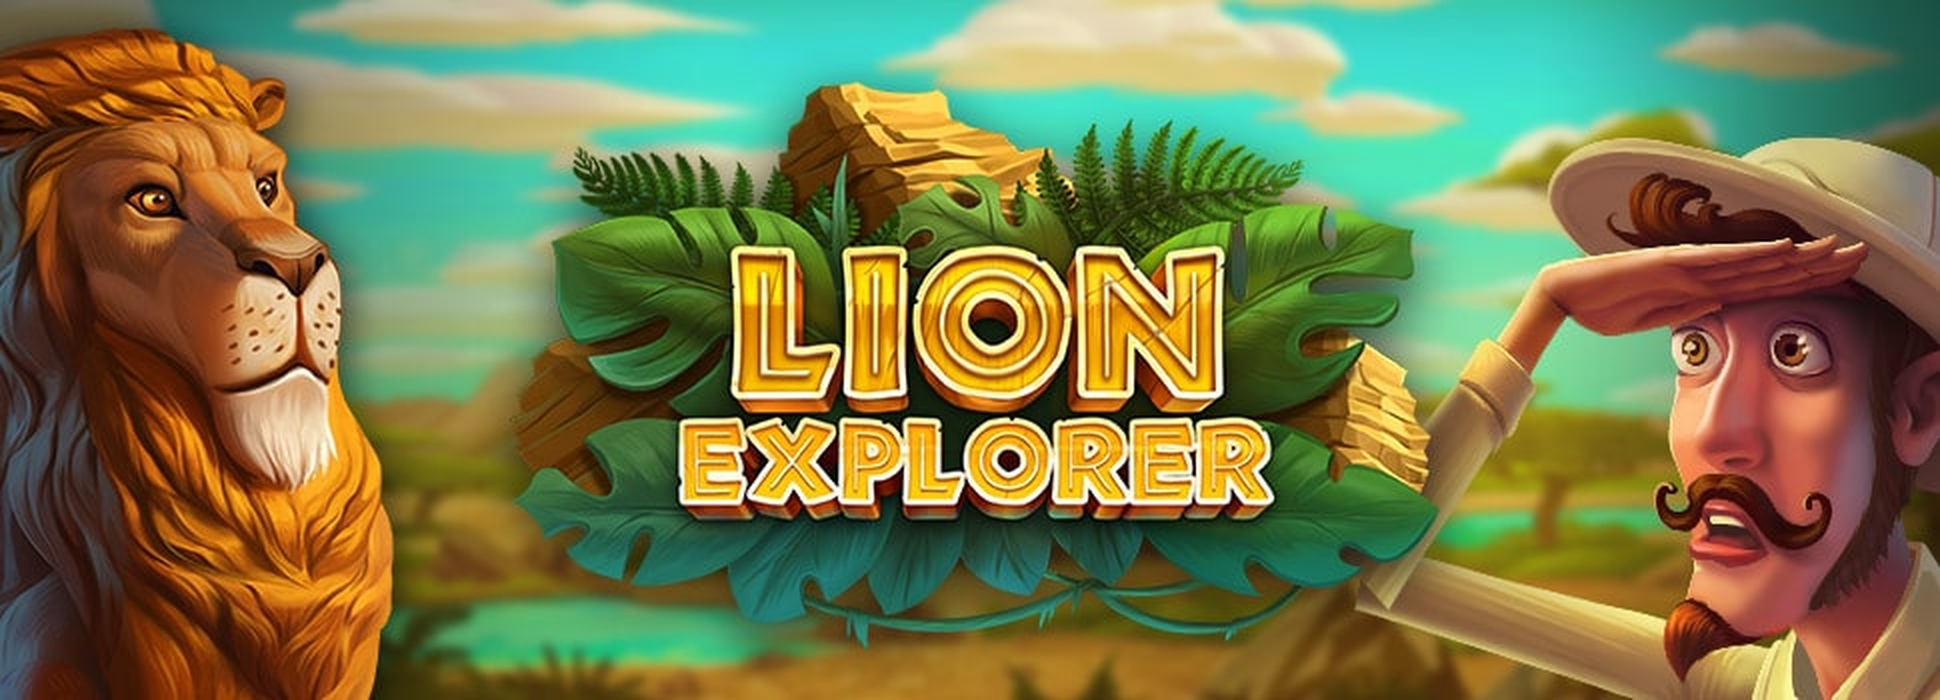 The Lion Explorer Online Slot Demo Game by Mobilots